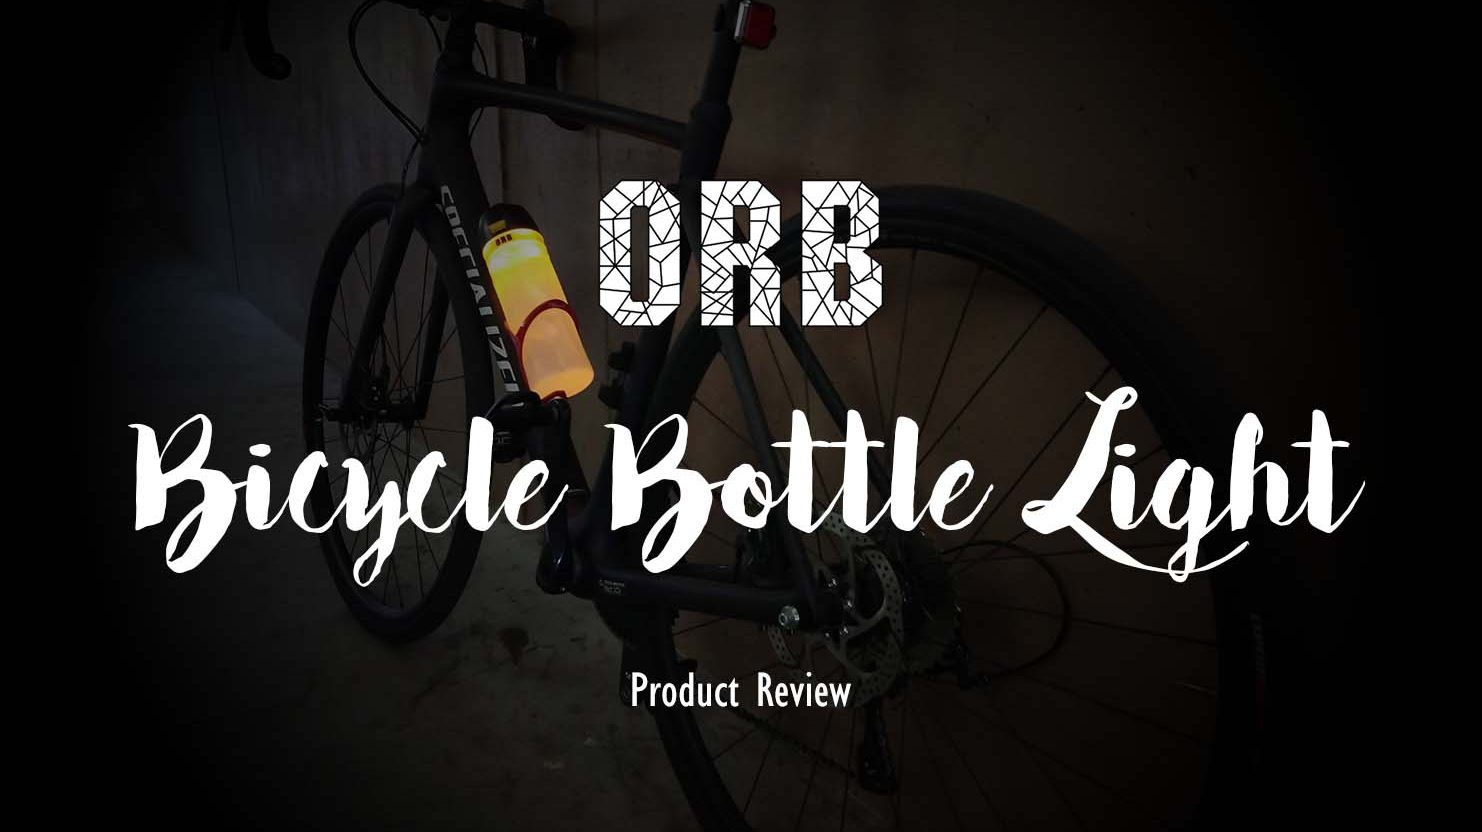 The ORB Bicycle Bottle Light